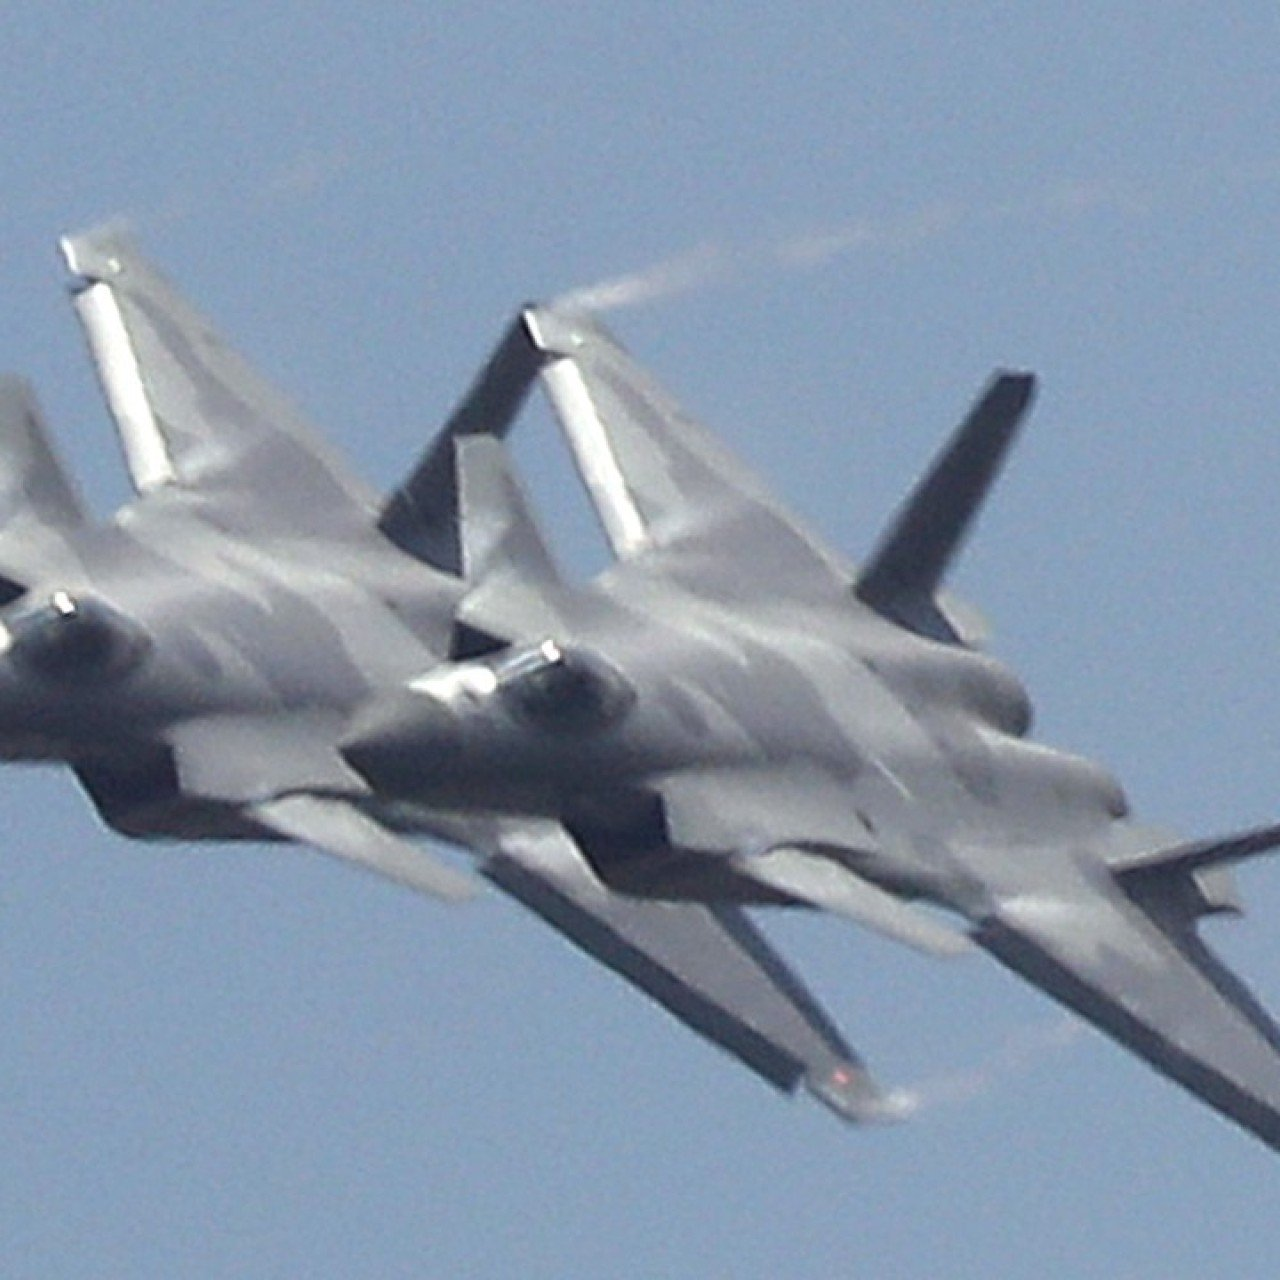 China's new J-20 stealth fighter engine a no-show at Zhuhai air show